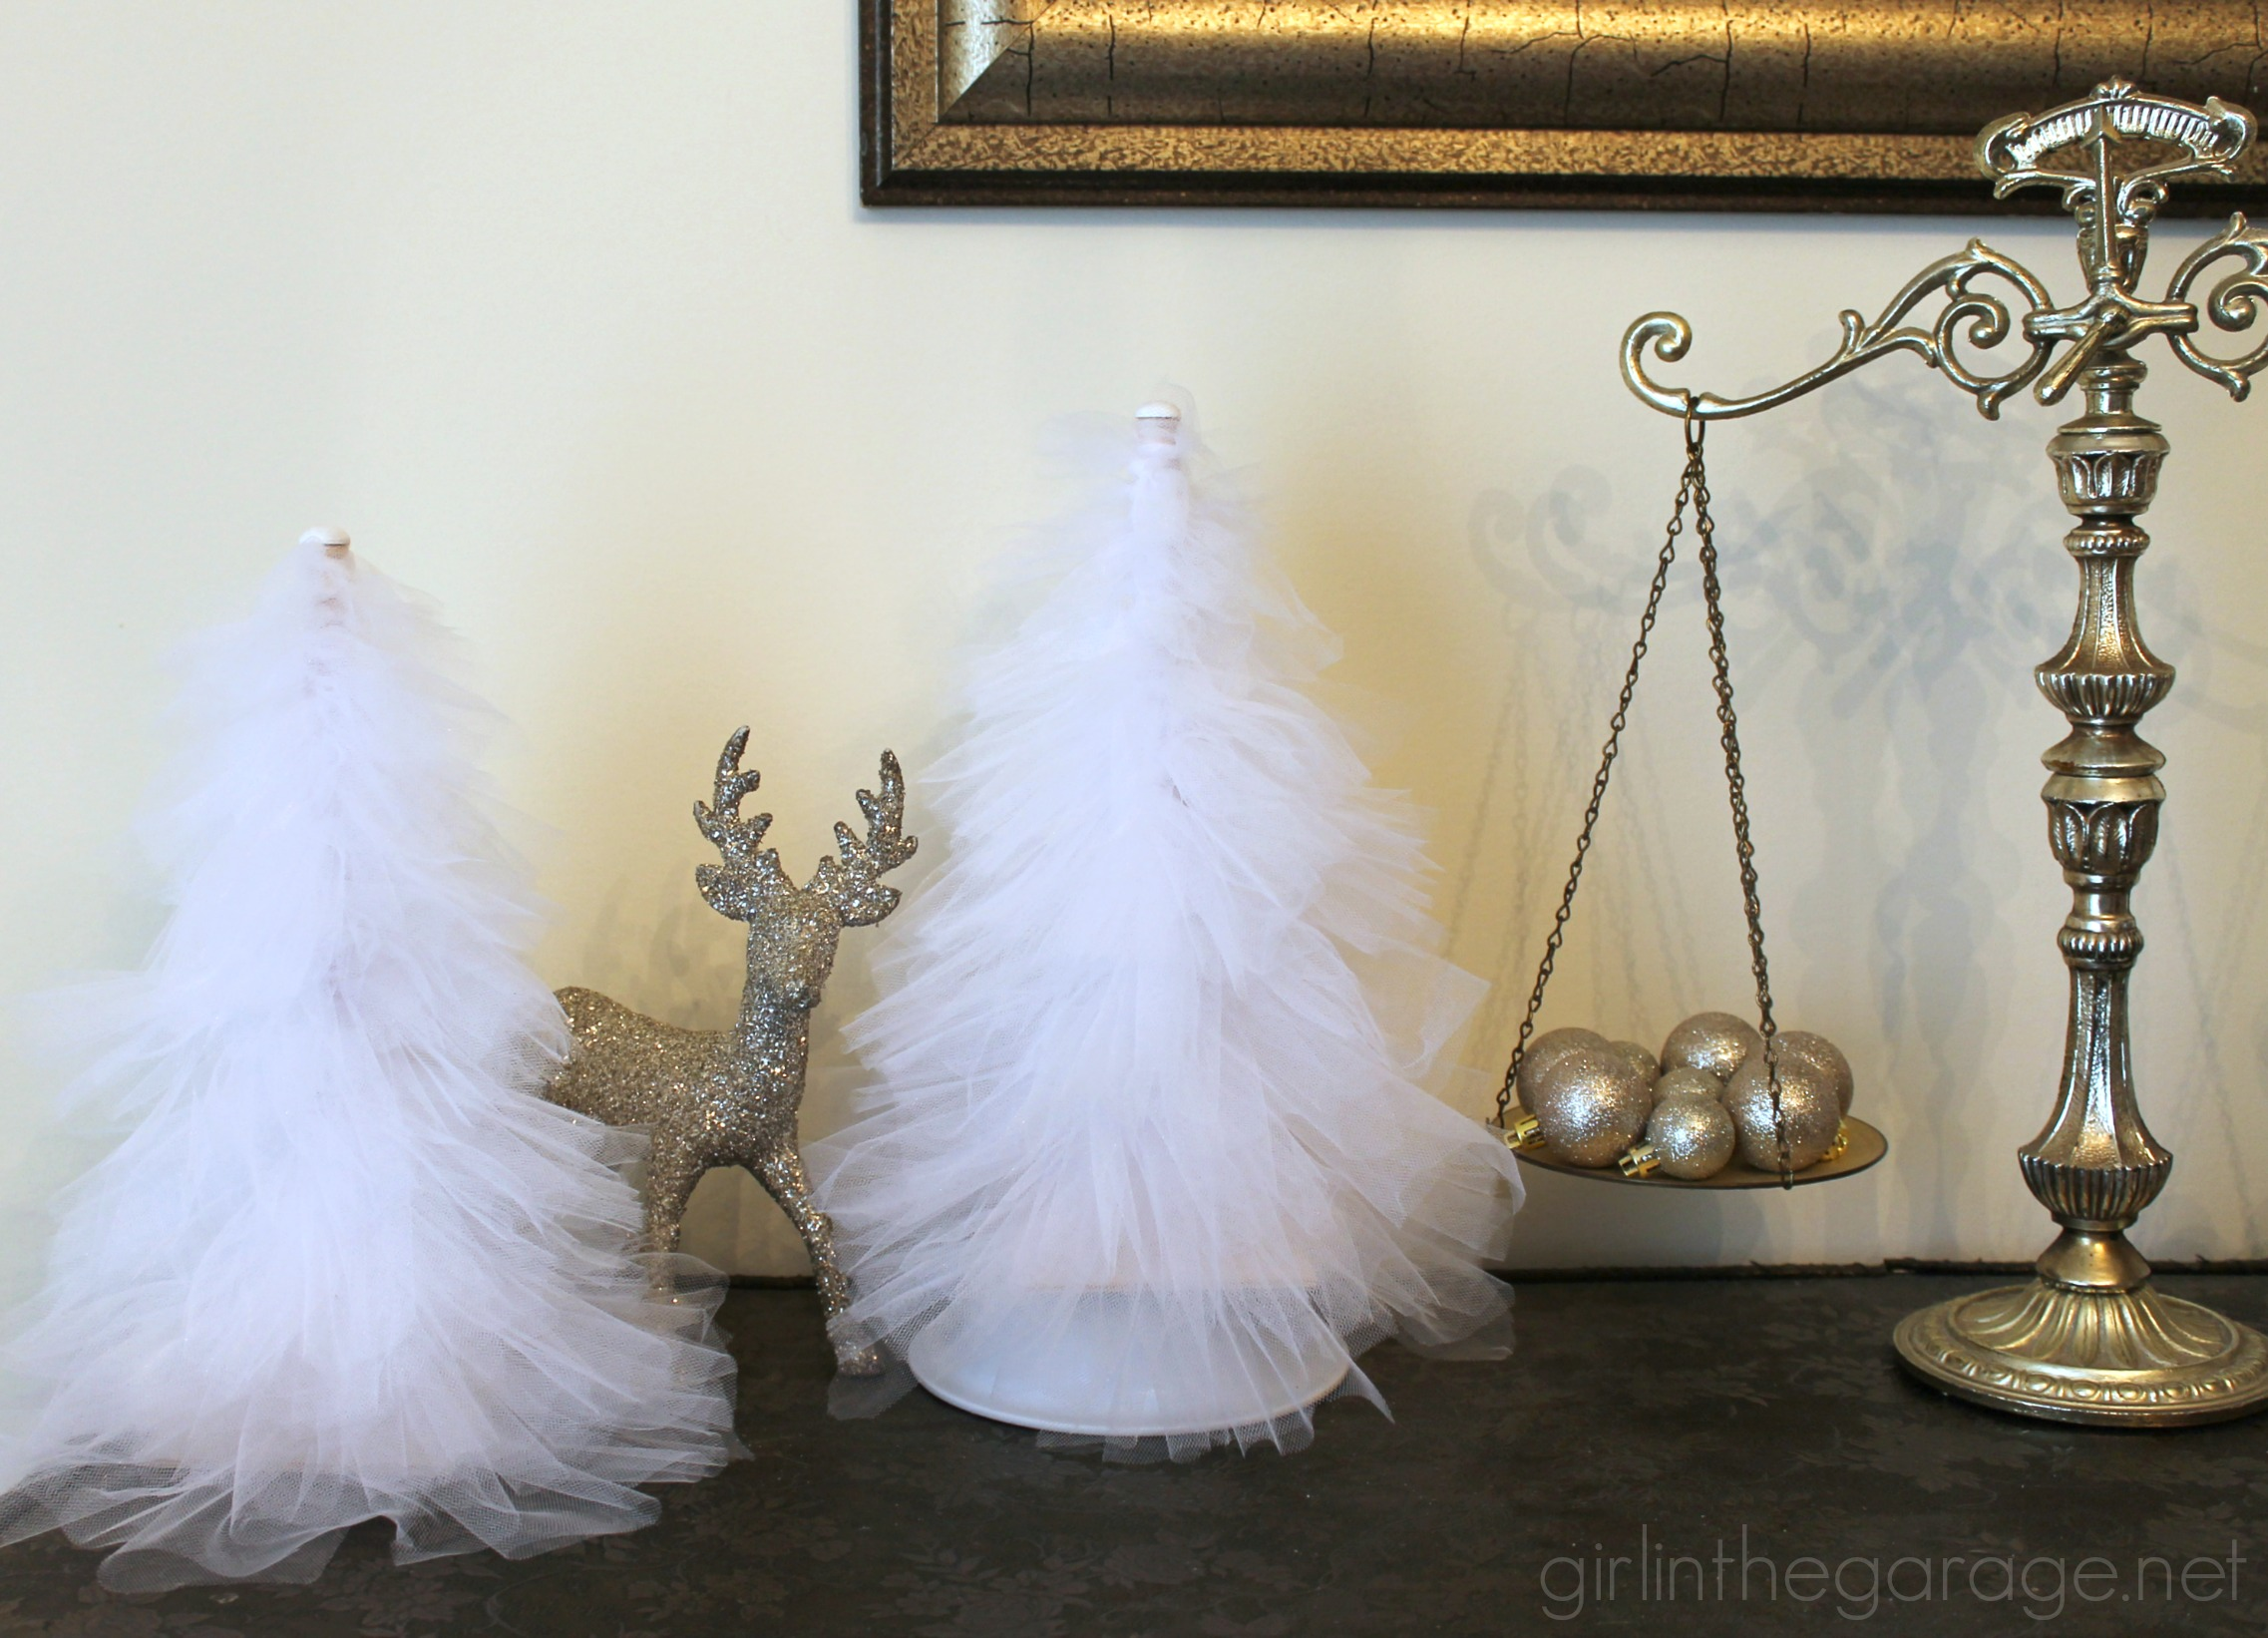 diy tulle trees in the garage